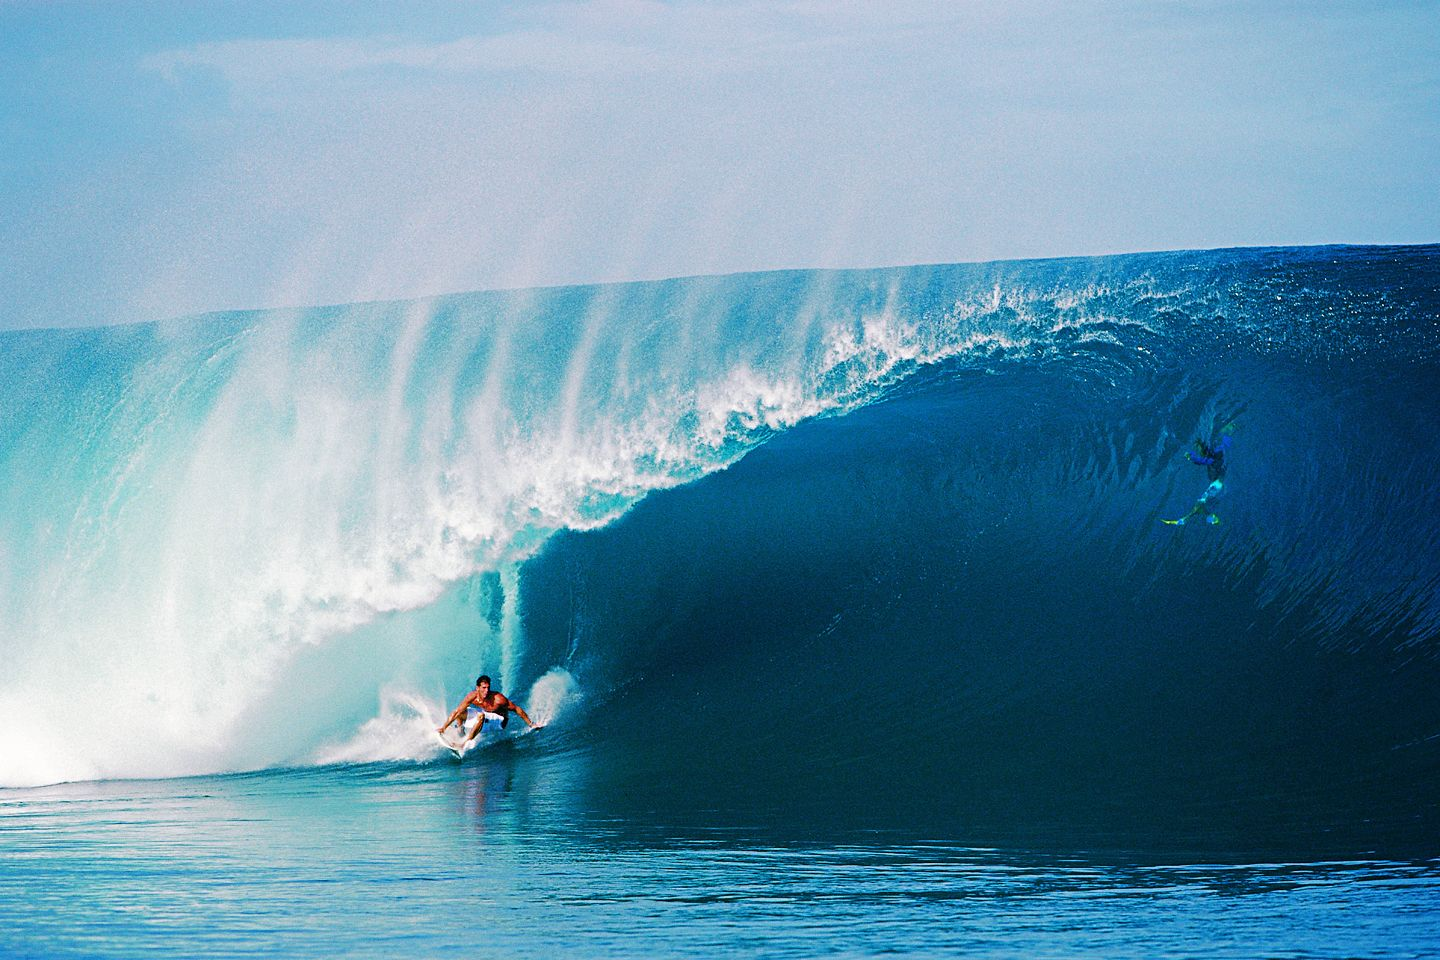 5 The Bird The 5 Most Iconic Surfing Images Ever Surf Europe Surfing Big Wave Surfing Mavericks Surfing